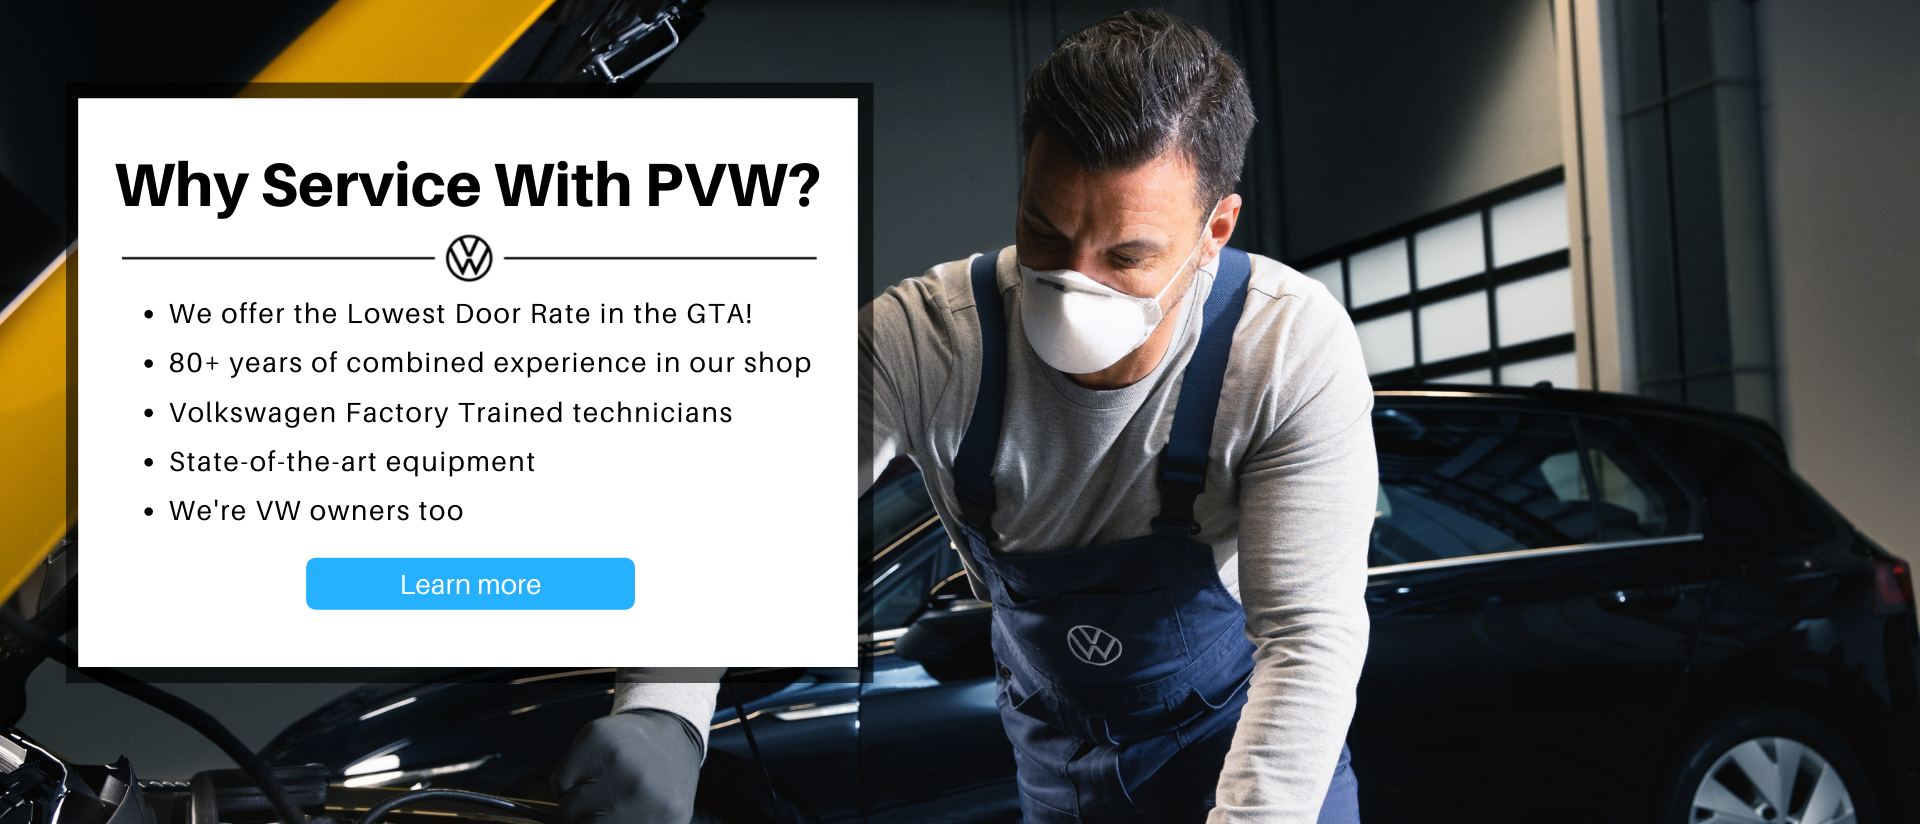 Pvw Website Banner Why Service With Us